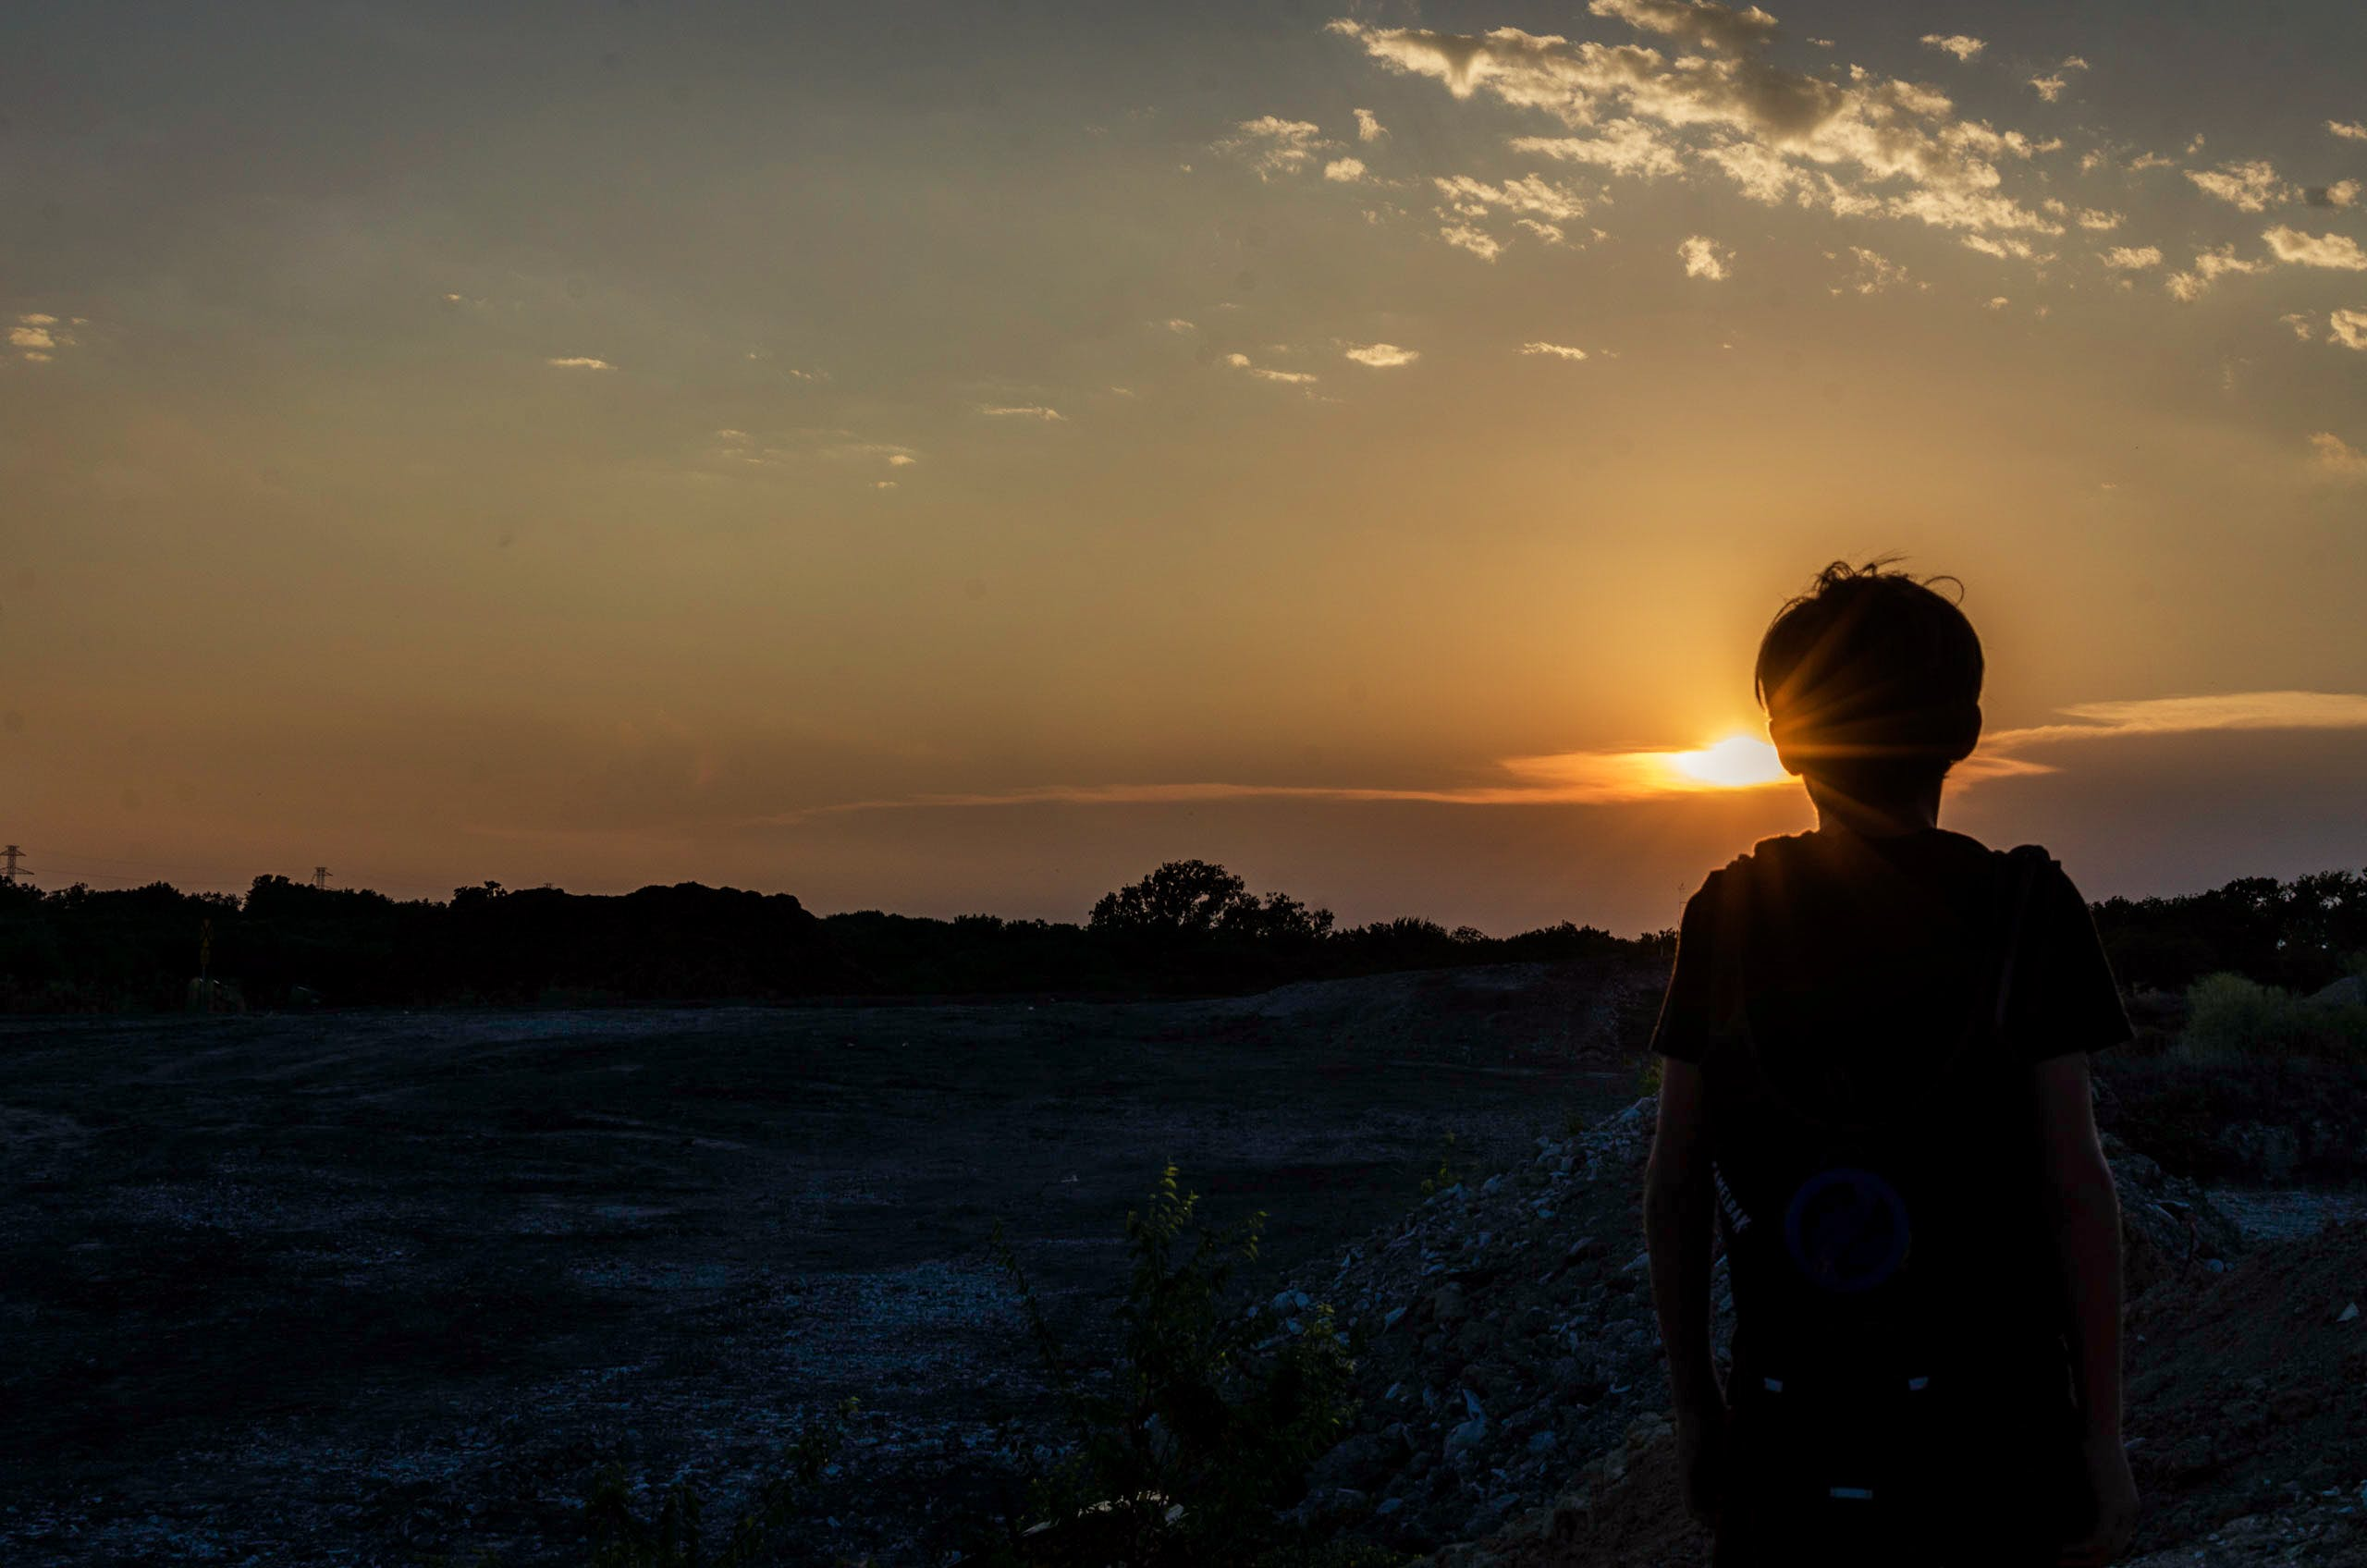 Silhouette of a Boy During Sunset